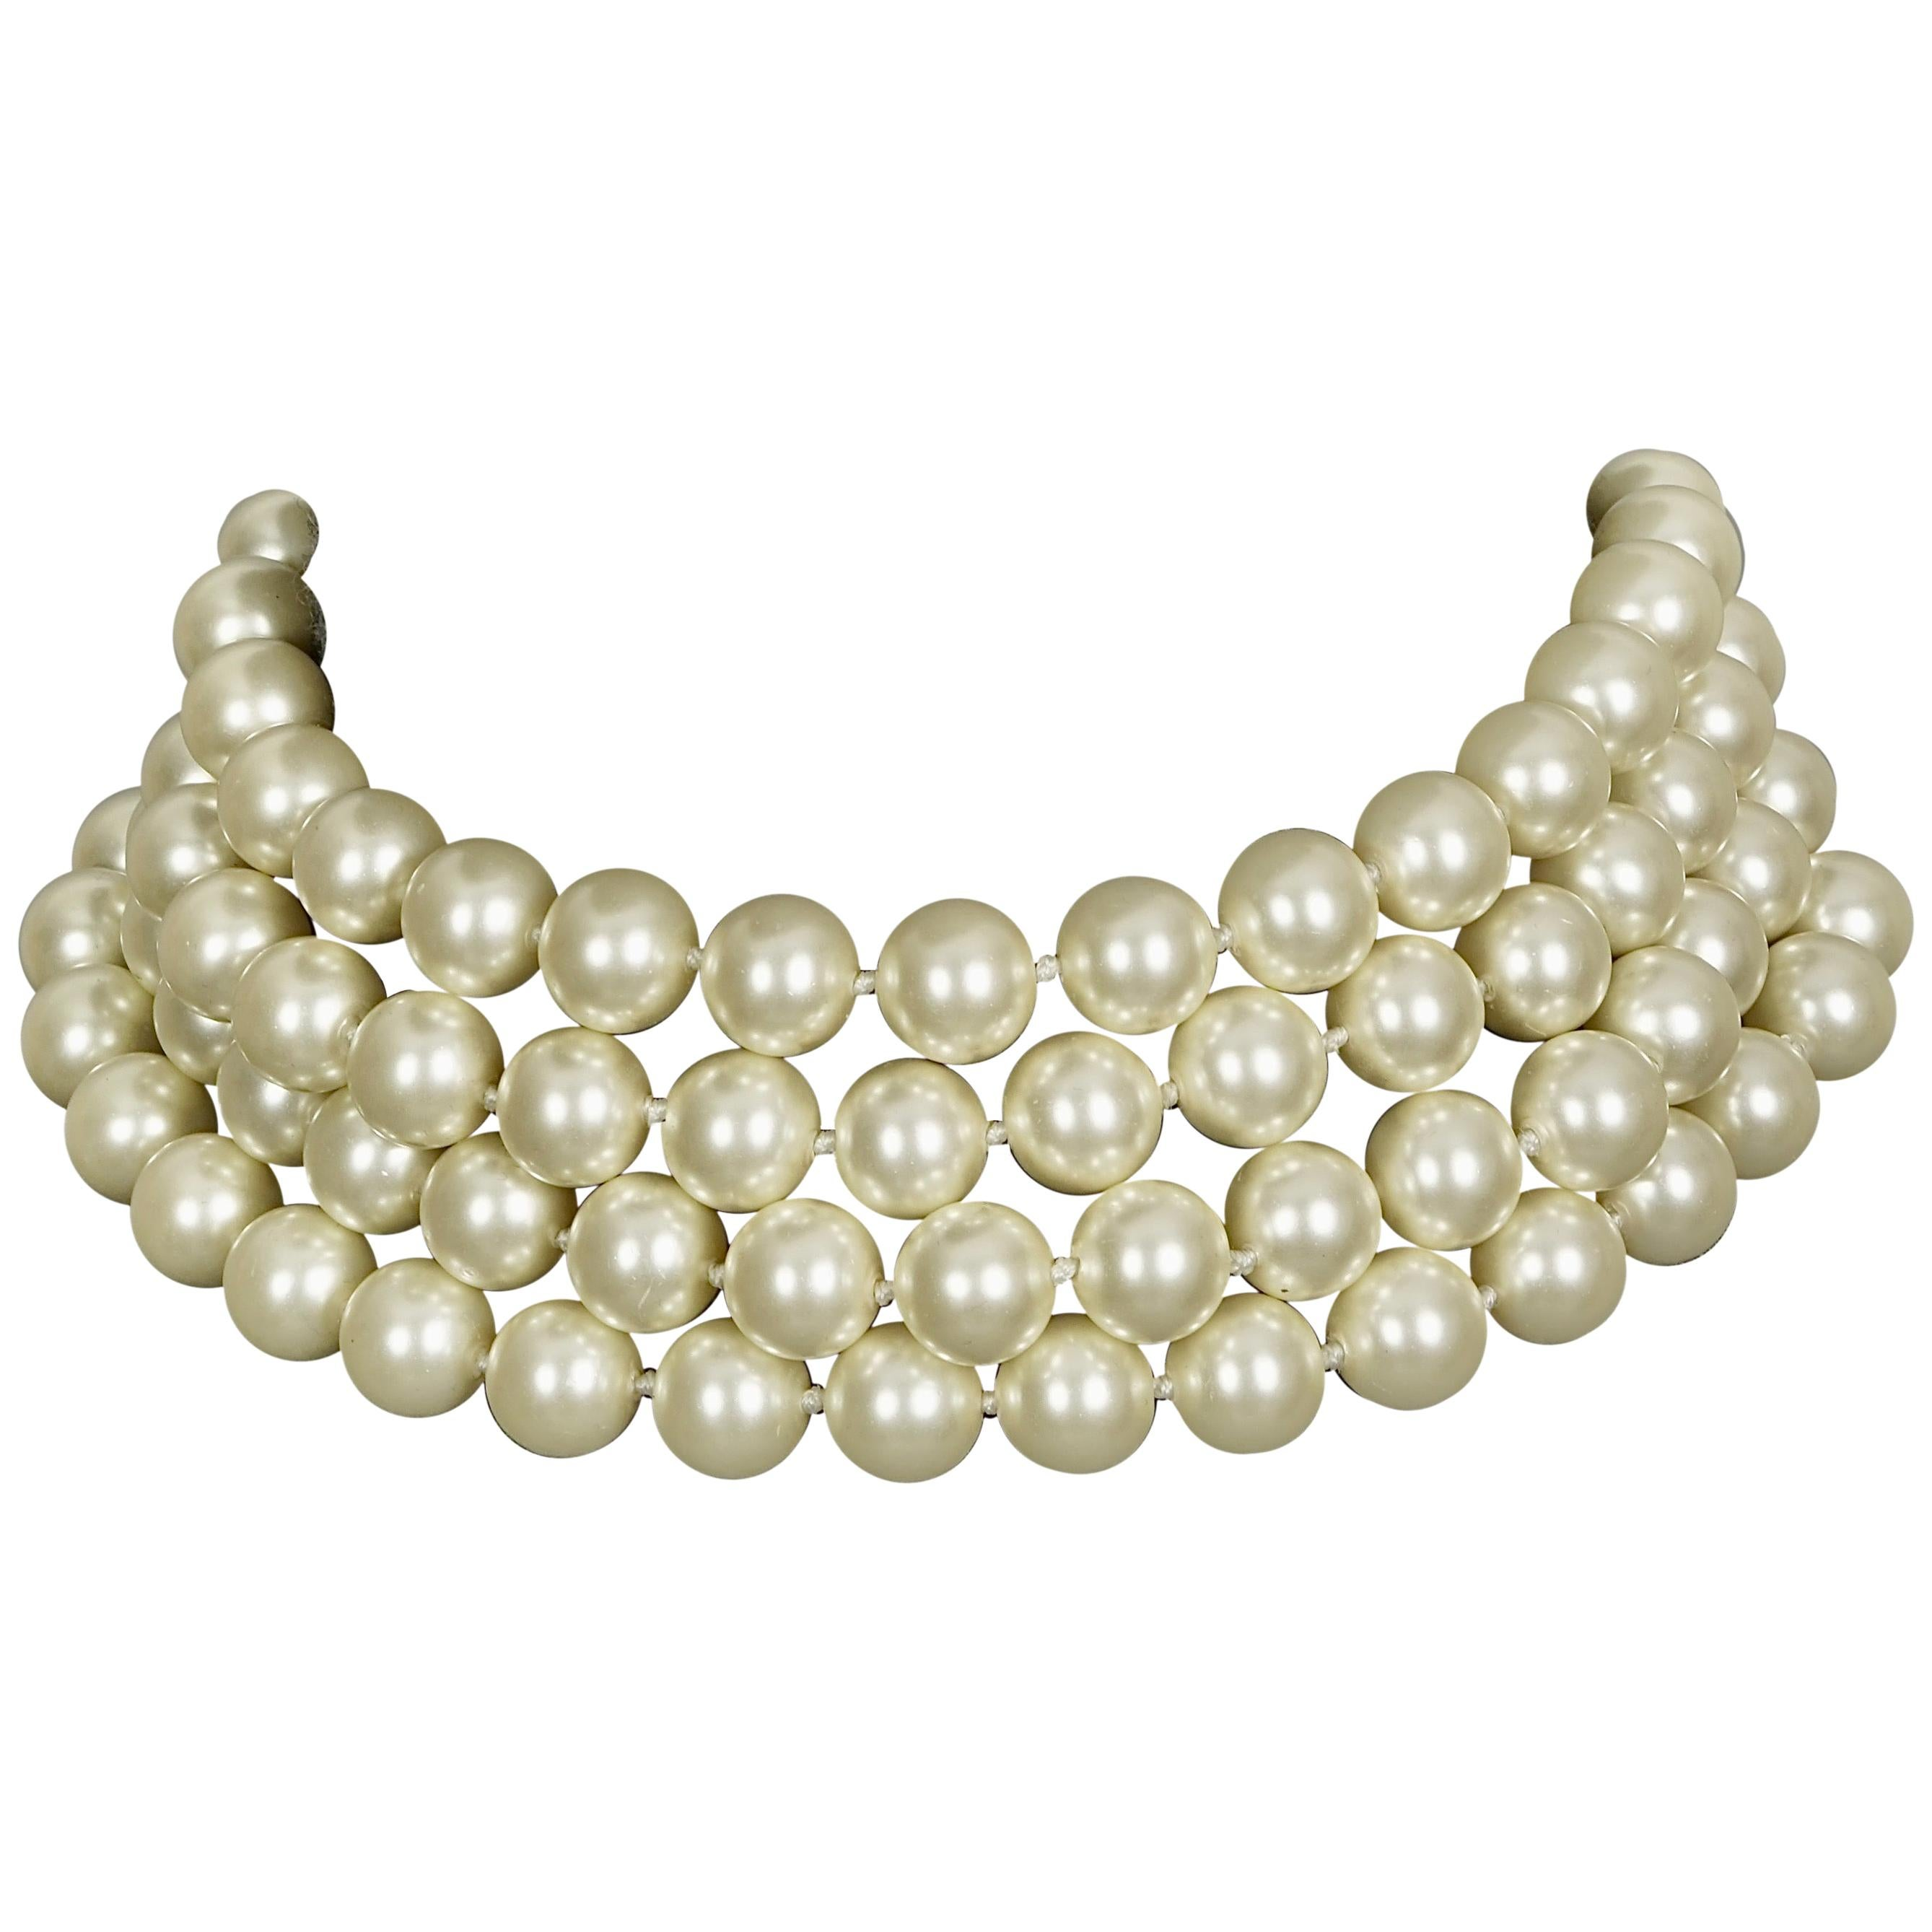 Large Pearl Necklace Dainty Pearl Choker Necklace Multi Layered pearl choker Pearl Strand Necklace Vintage Style Baroque Pearl Necklace